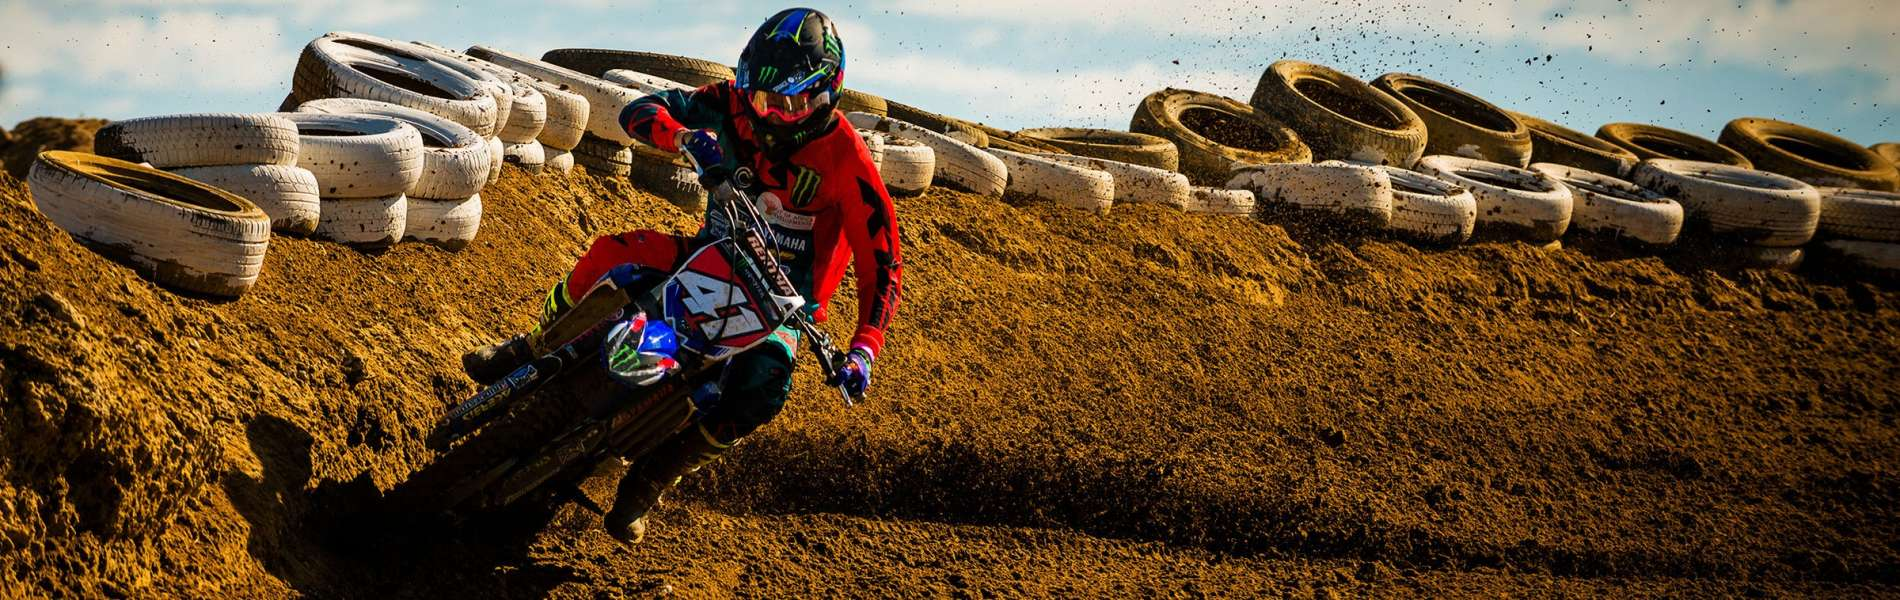 Monster athletes compete in the 2017 South Africa Motocross Nationals for Round 2 in Cape Town, South Africa